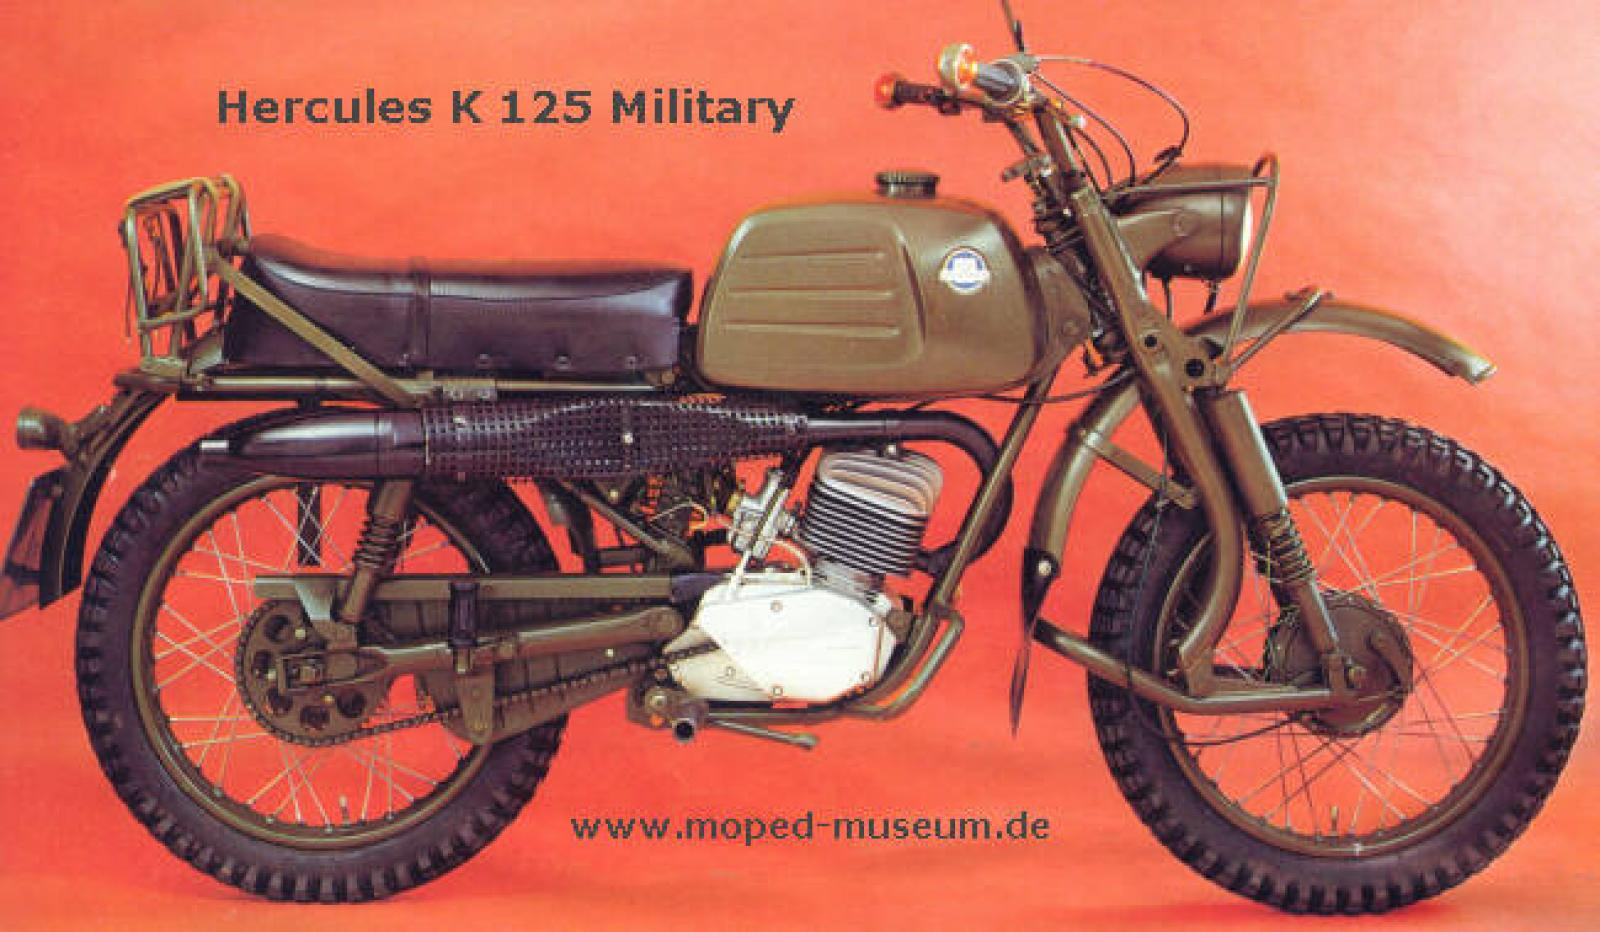 Hercules K 125 Military 1988 images #74642